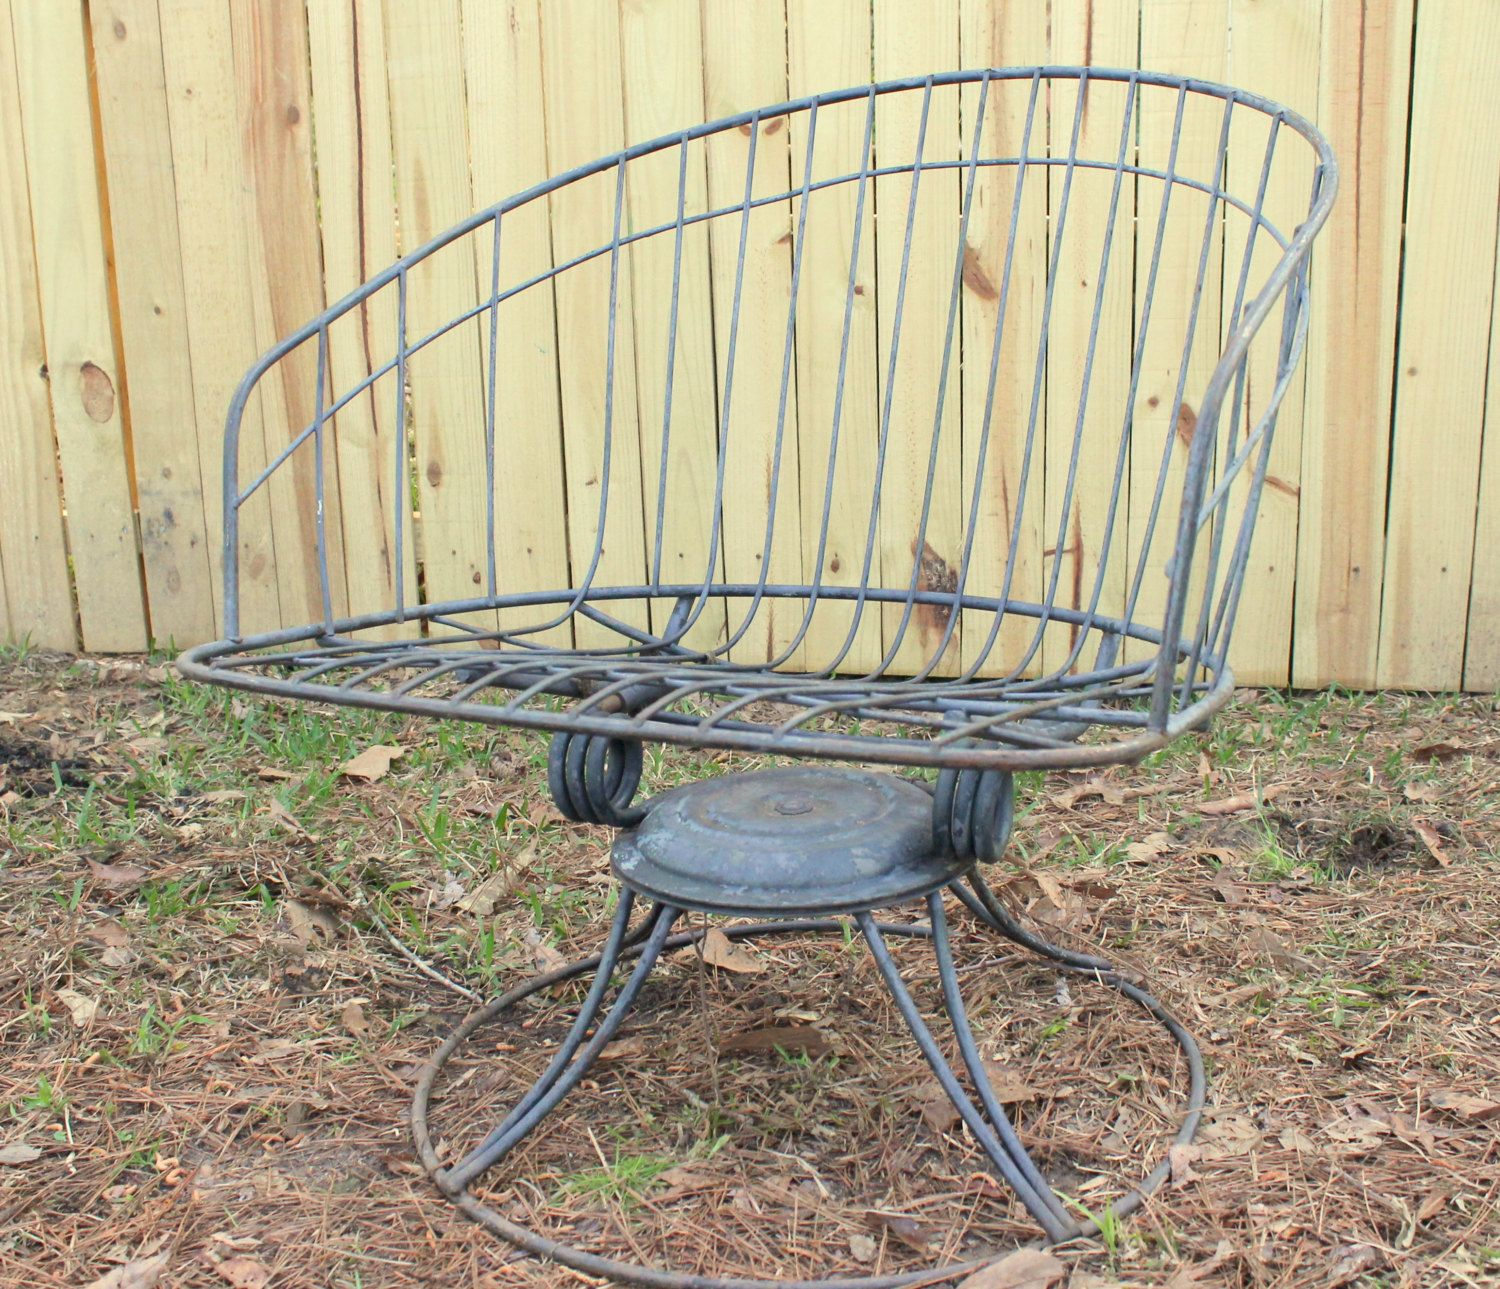 Vintage mid century modern metal folding wire mesh patio chairs - Vintage Patio Furniture Lawn Chair Outdoor Paitio Furniture Homecrest Wire Mid Century Retro